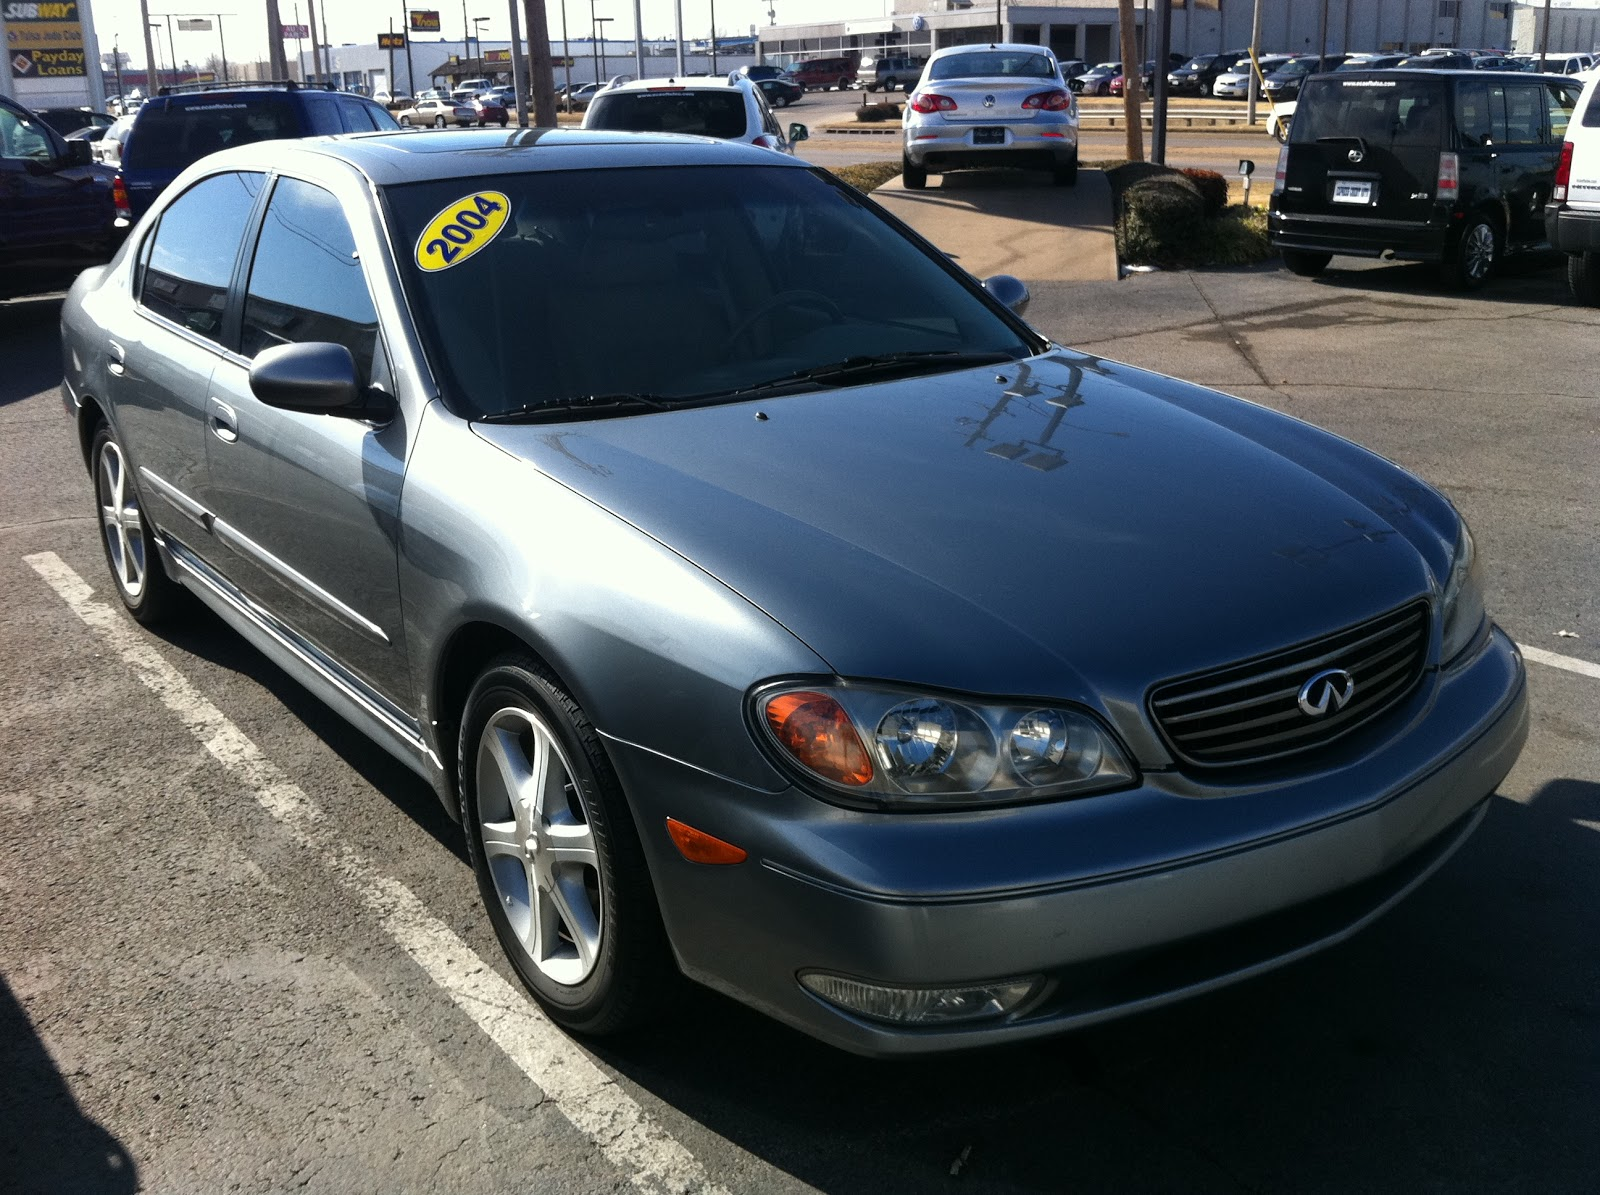 Credit Express Auto Okc >> Express Credit Auto of Tulsa: Great Selection, Easy Financing... That's ECA of Tulsa